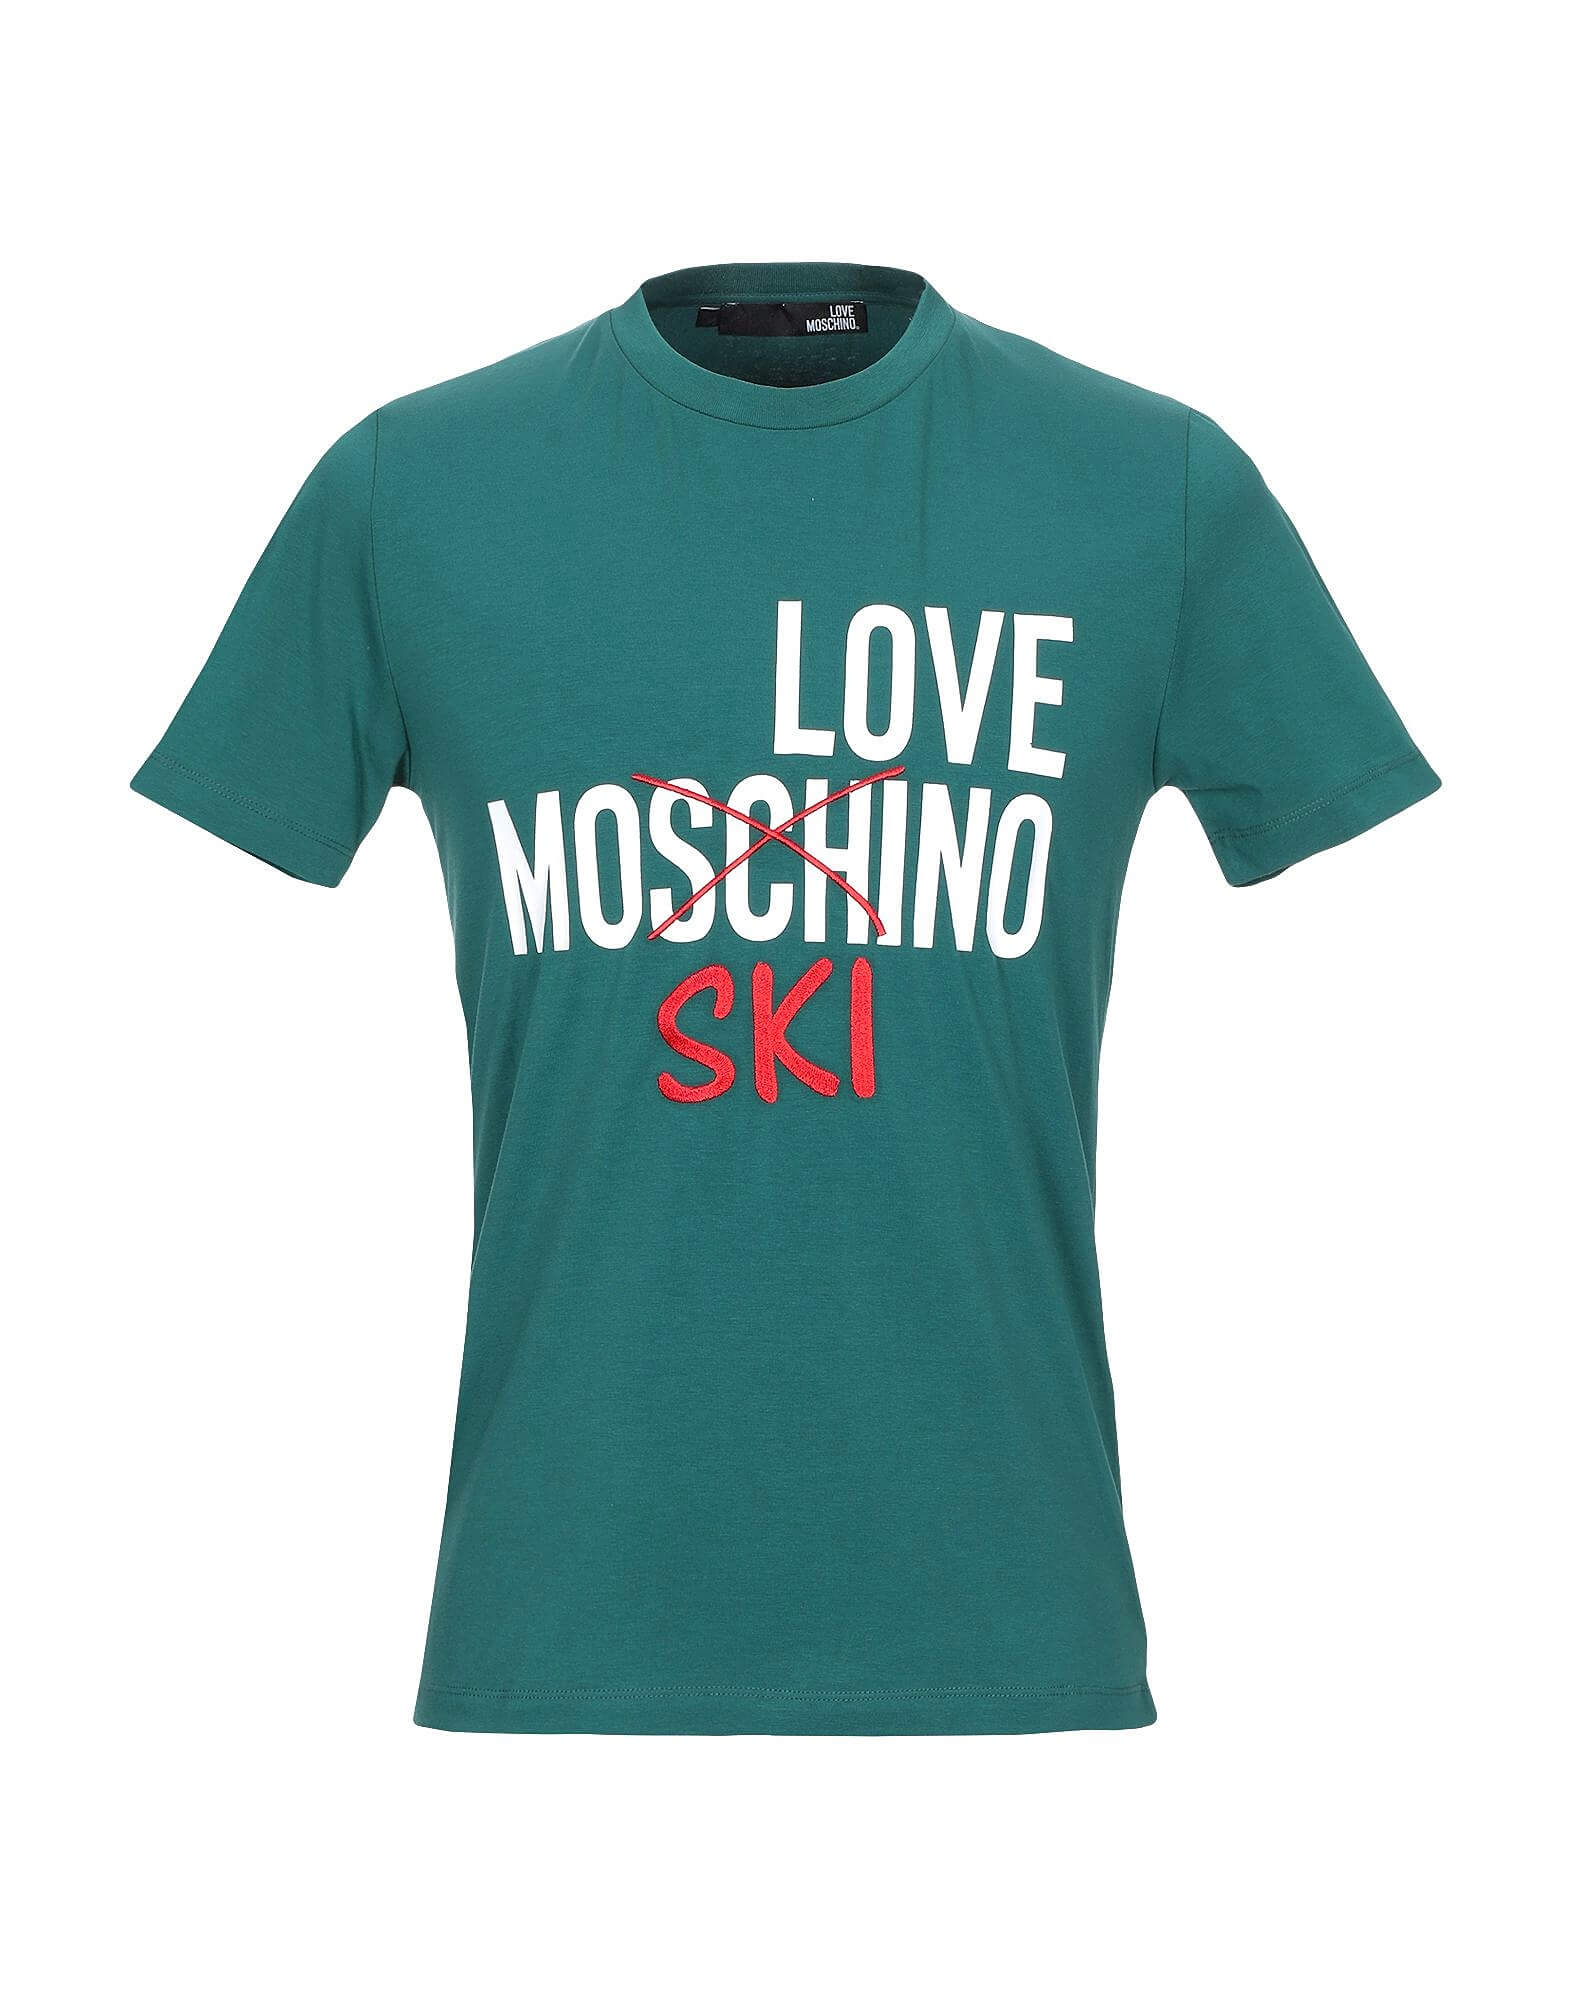 LOVE MOSCHINO SKI T-SHIRT MAN  M473011RE1811